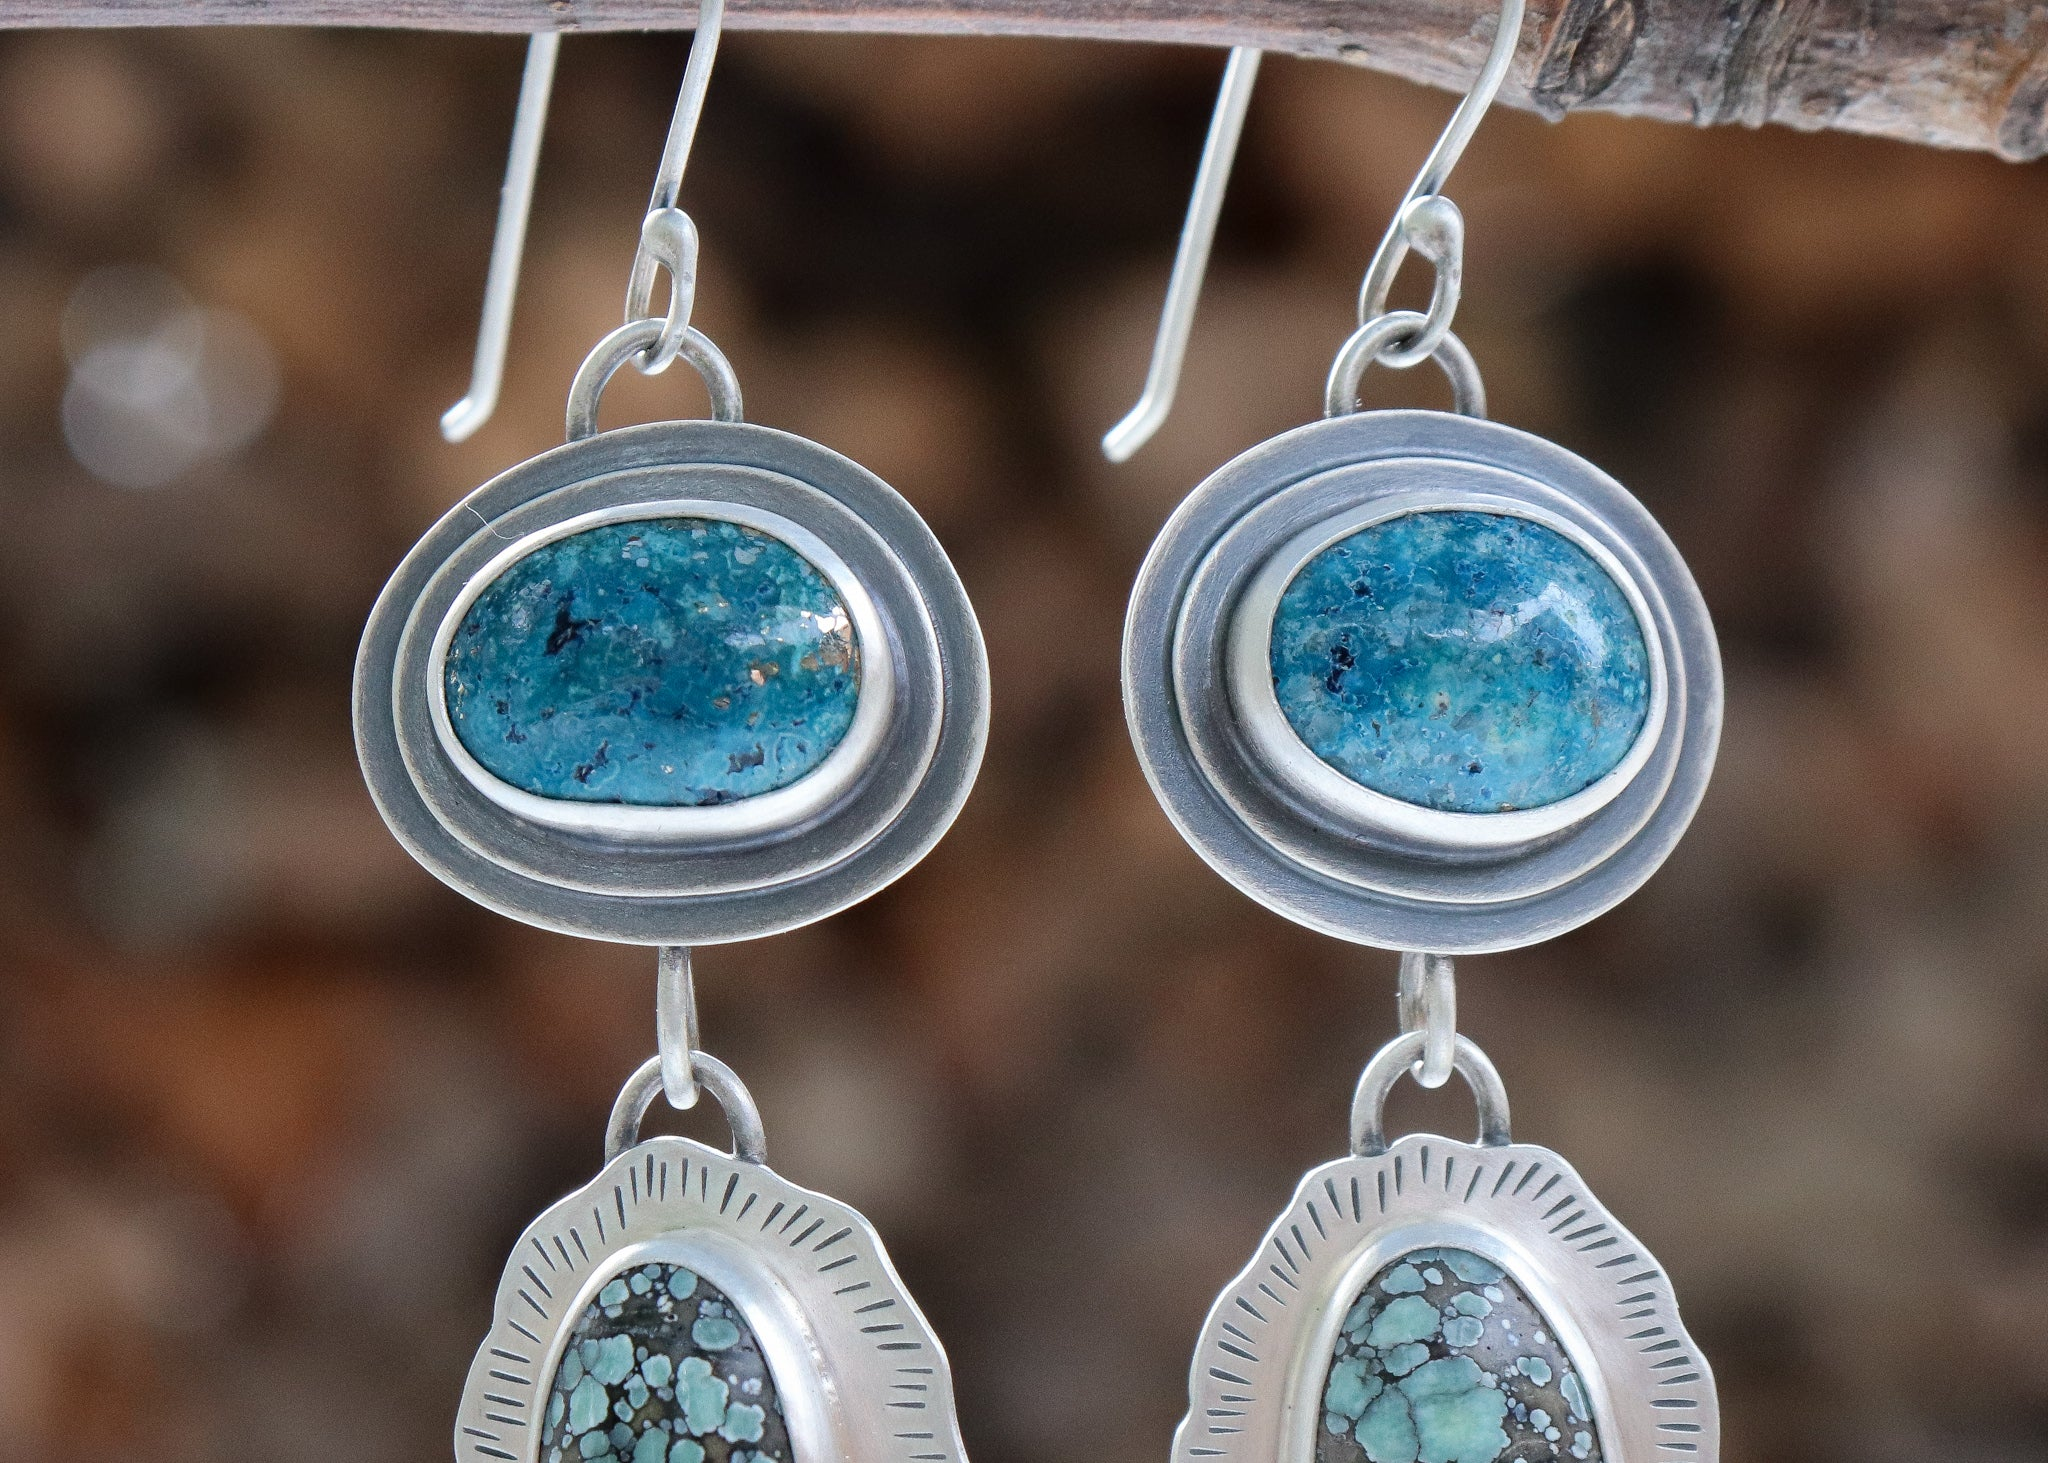 Campitos Turquoise + Starfox Variscite + Moonstone Earrings